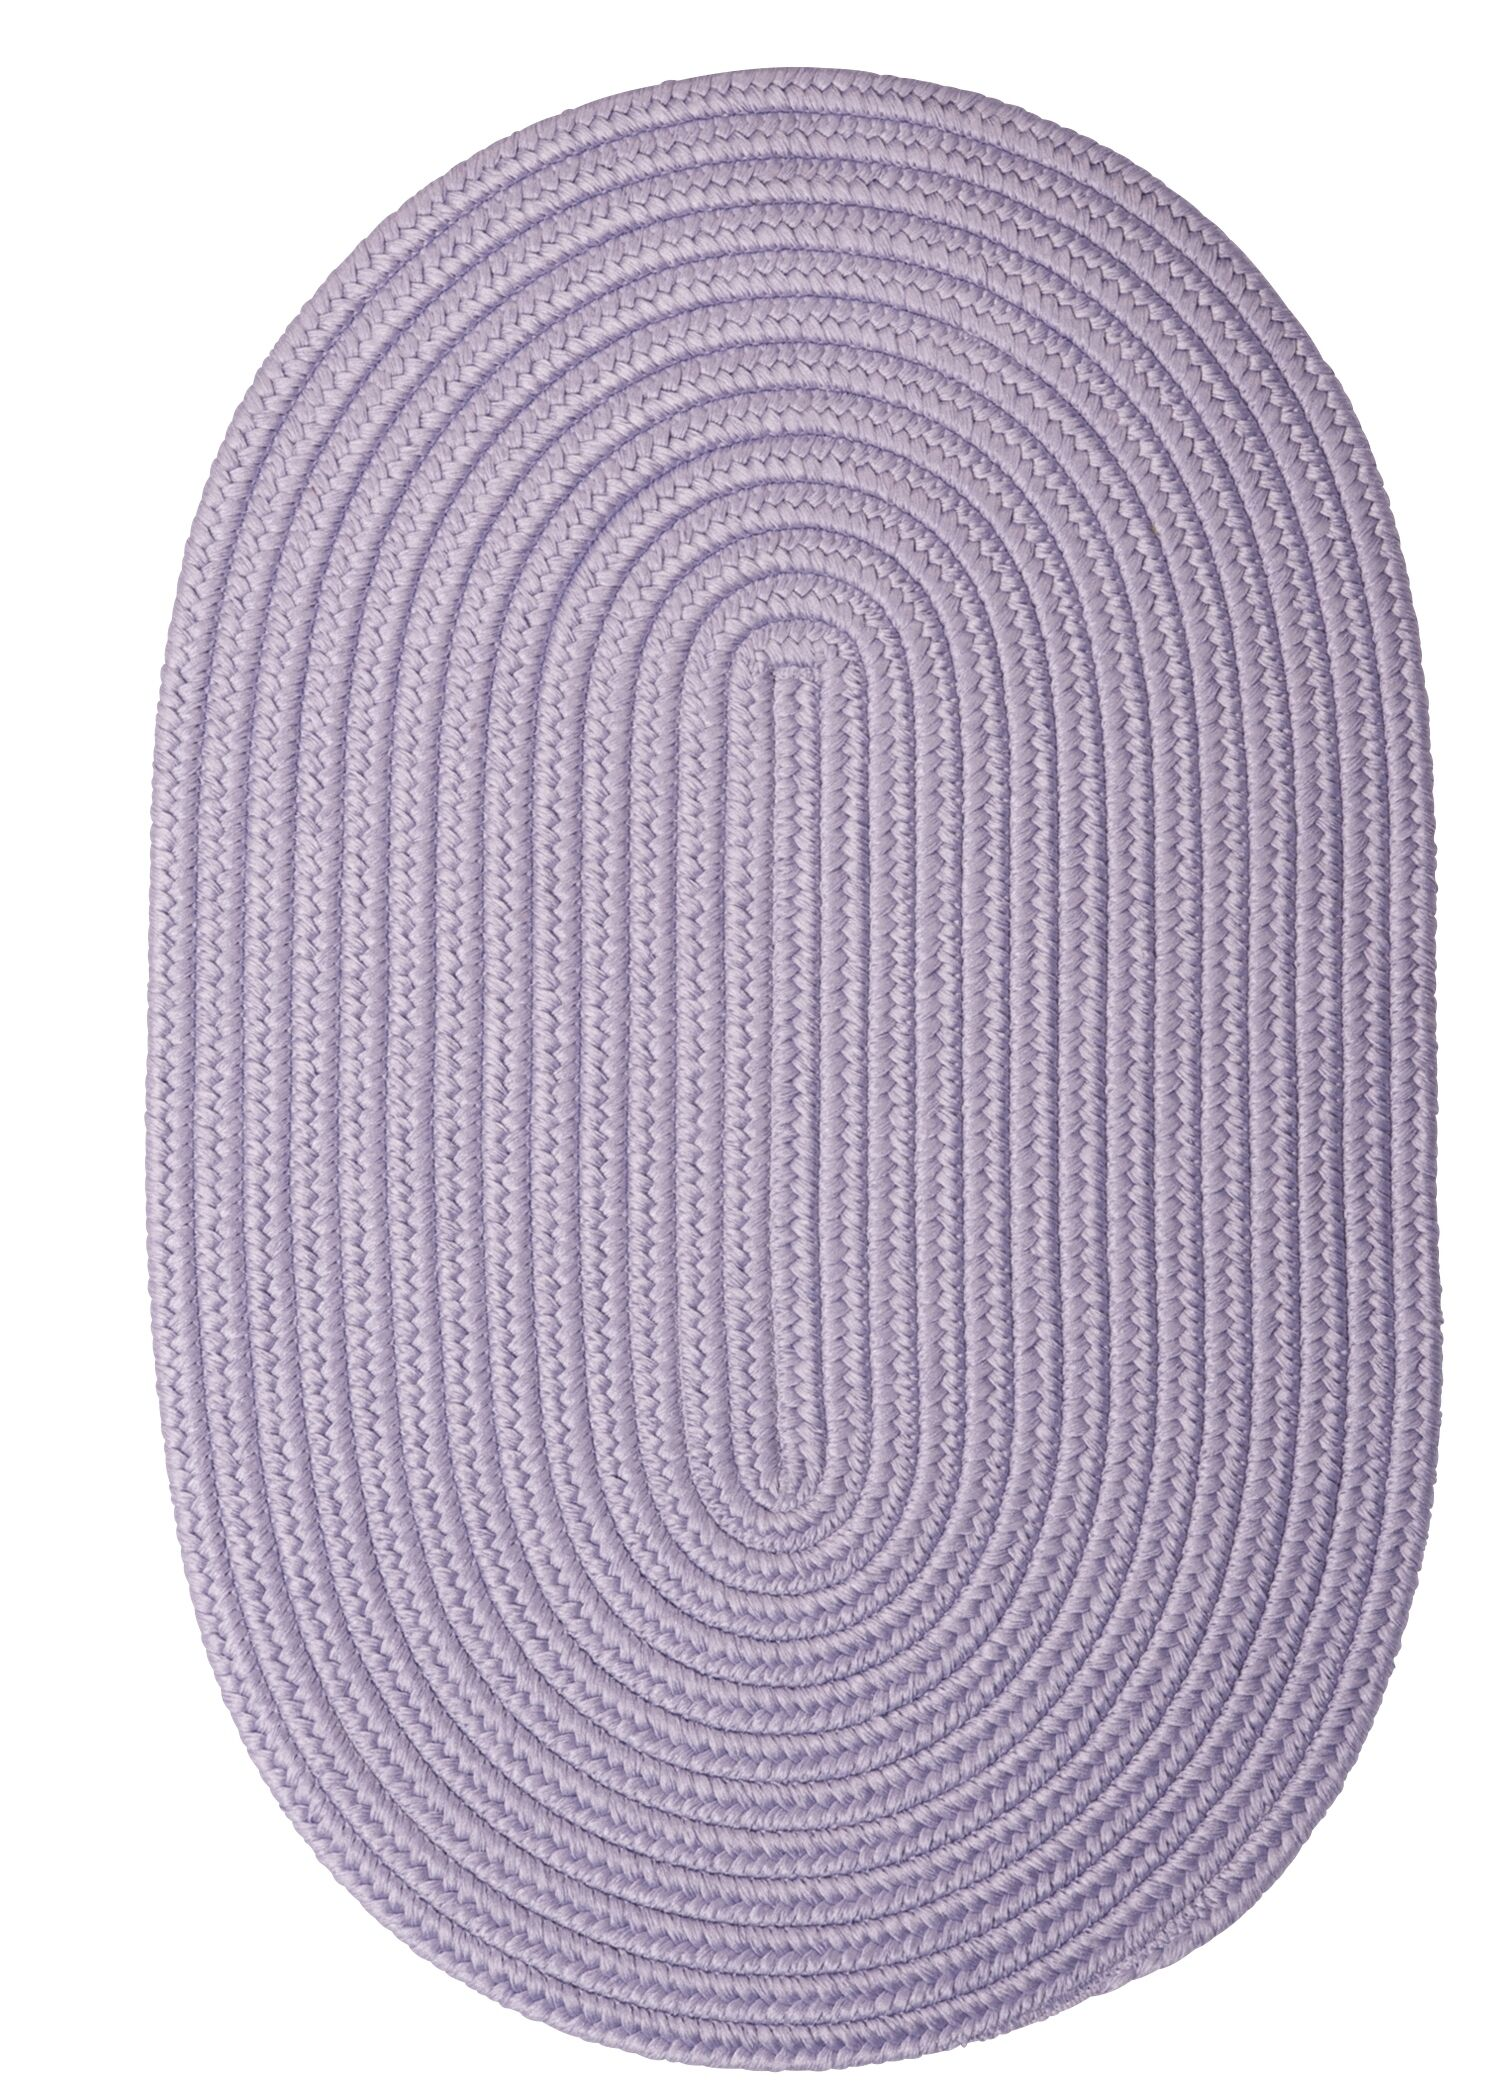 Mcintyre Amethyst Outdoor Area Rug Rug Size: Oval Runner 2' x 10'